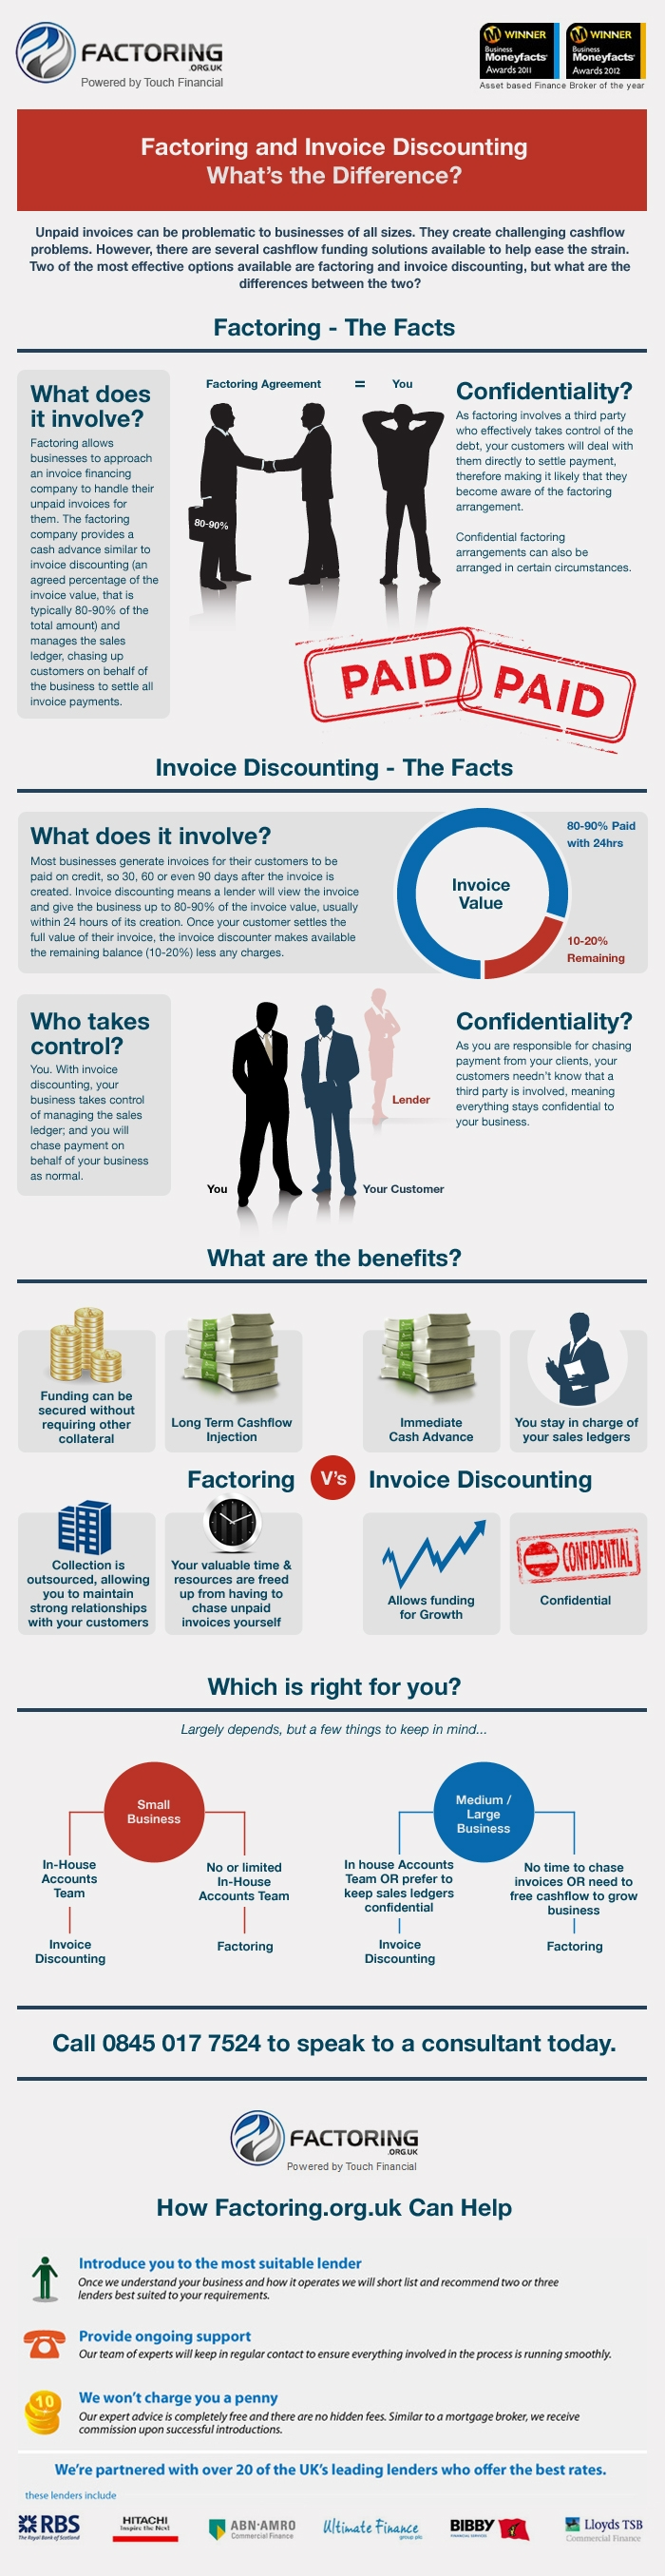 recruitment business financing factoring touch financial invoice finance companies